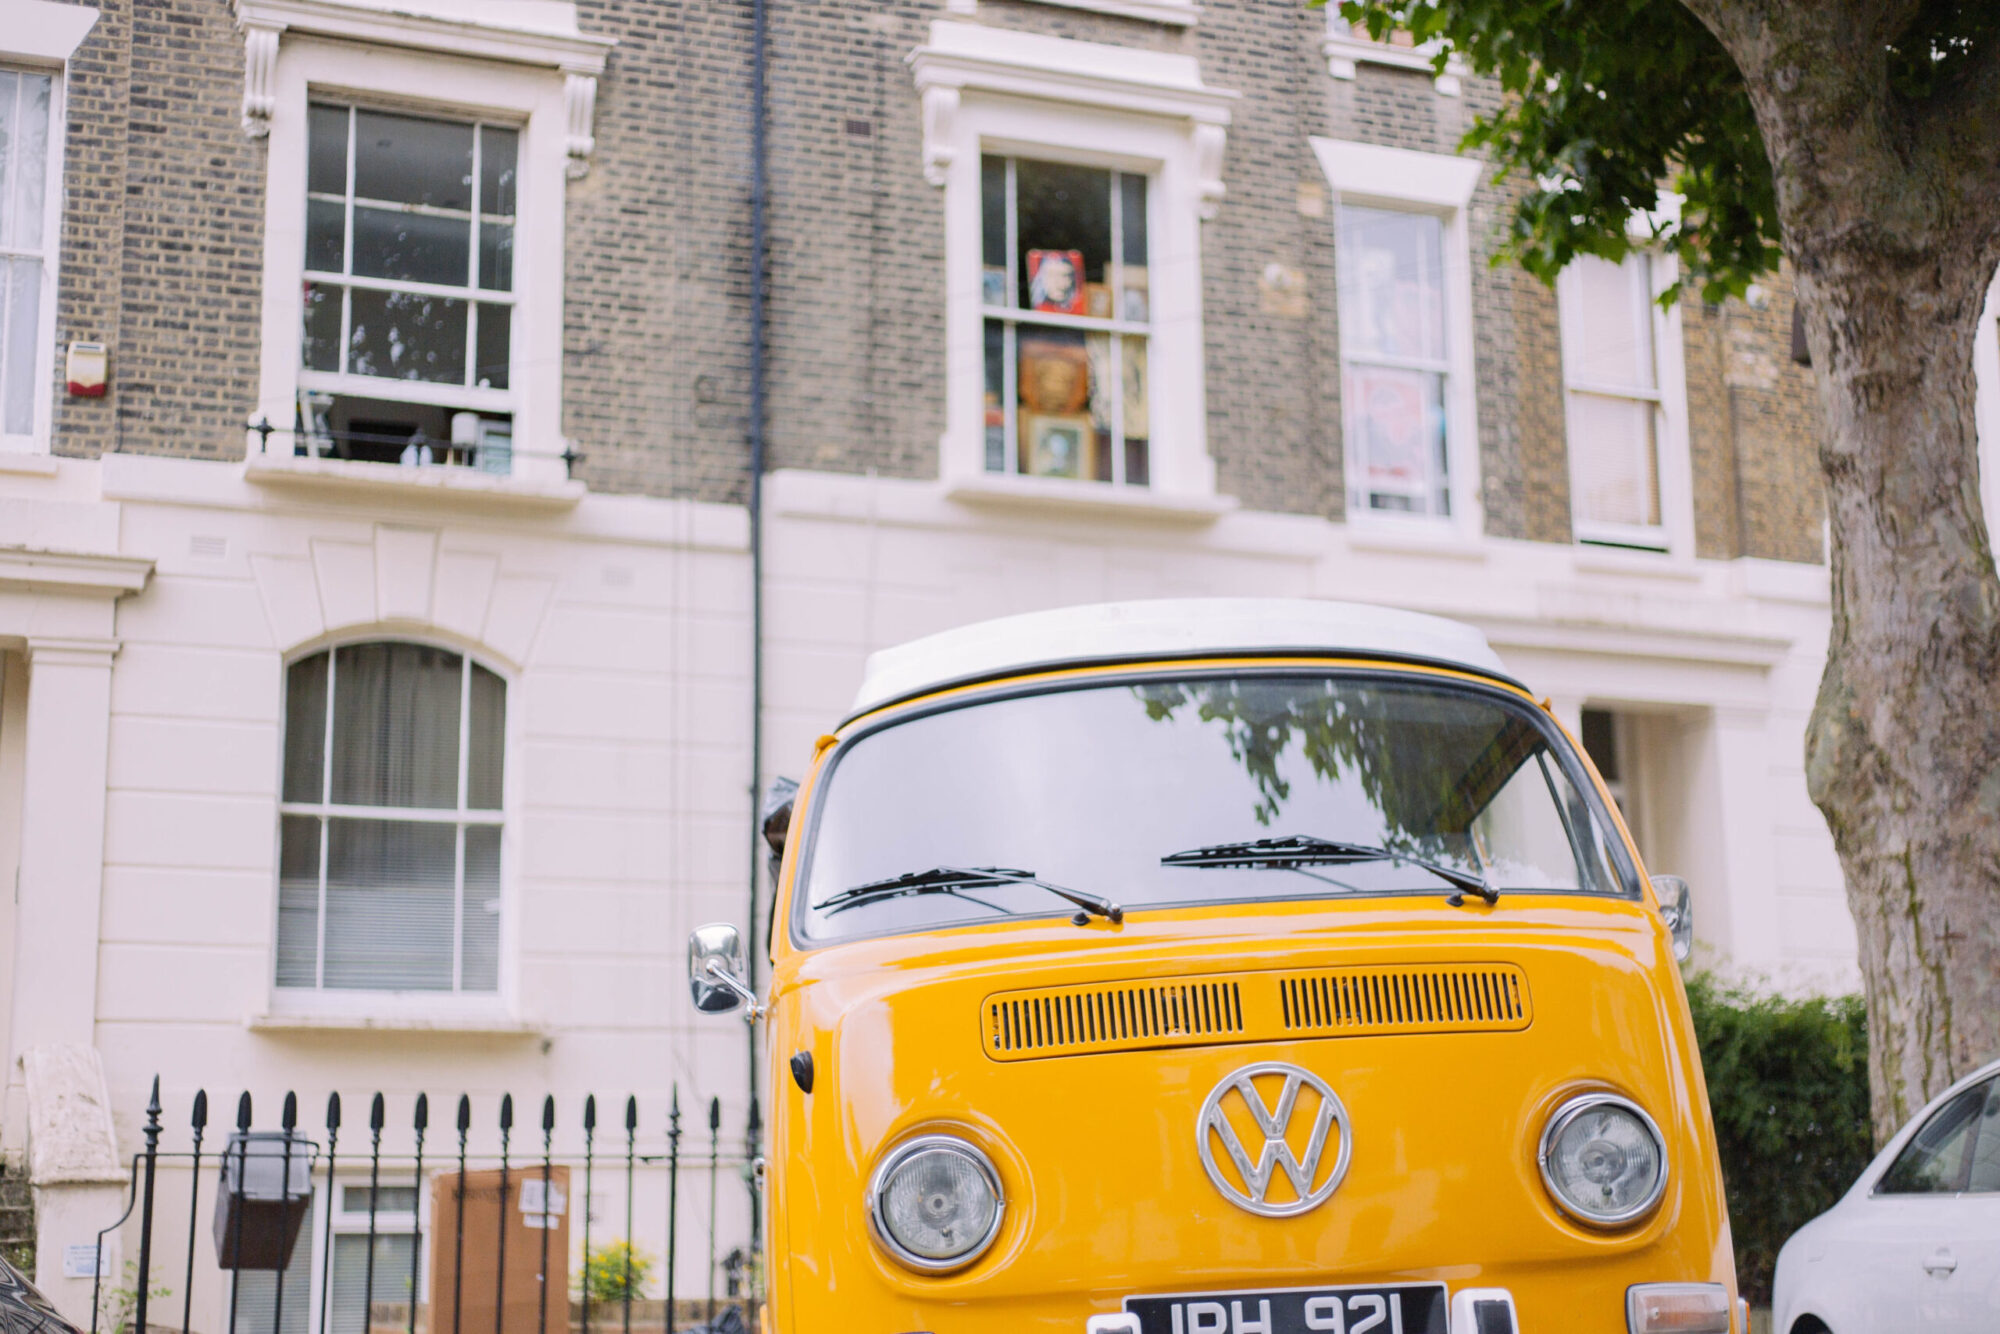 A yellow campervan on a residential road in Holloway.